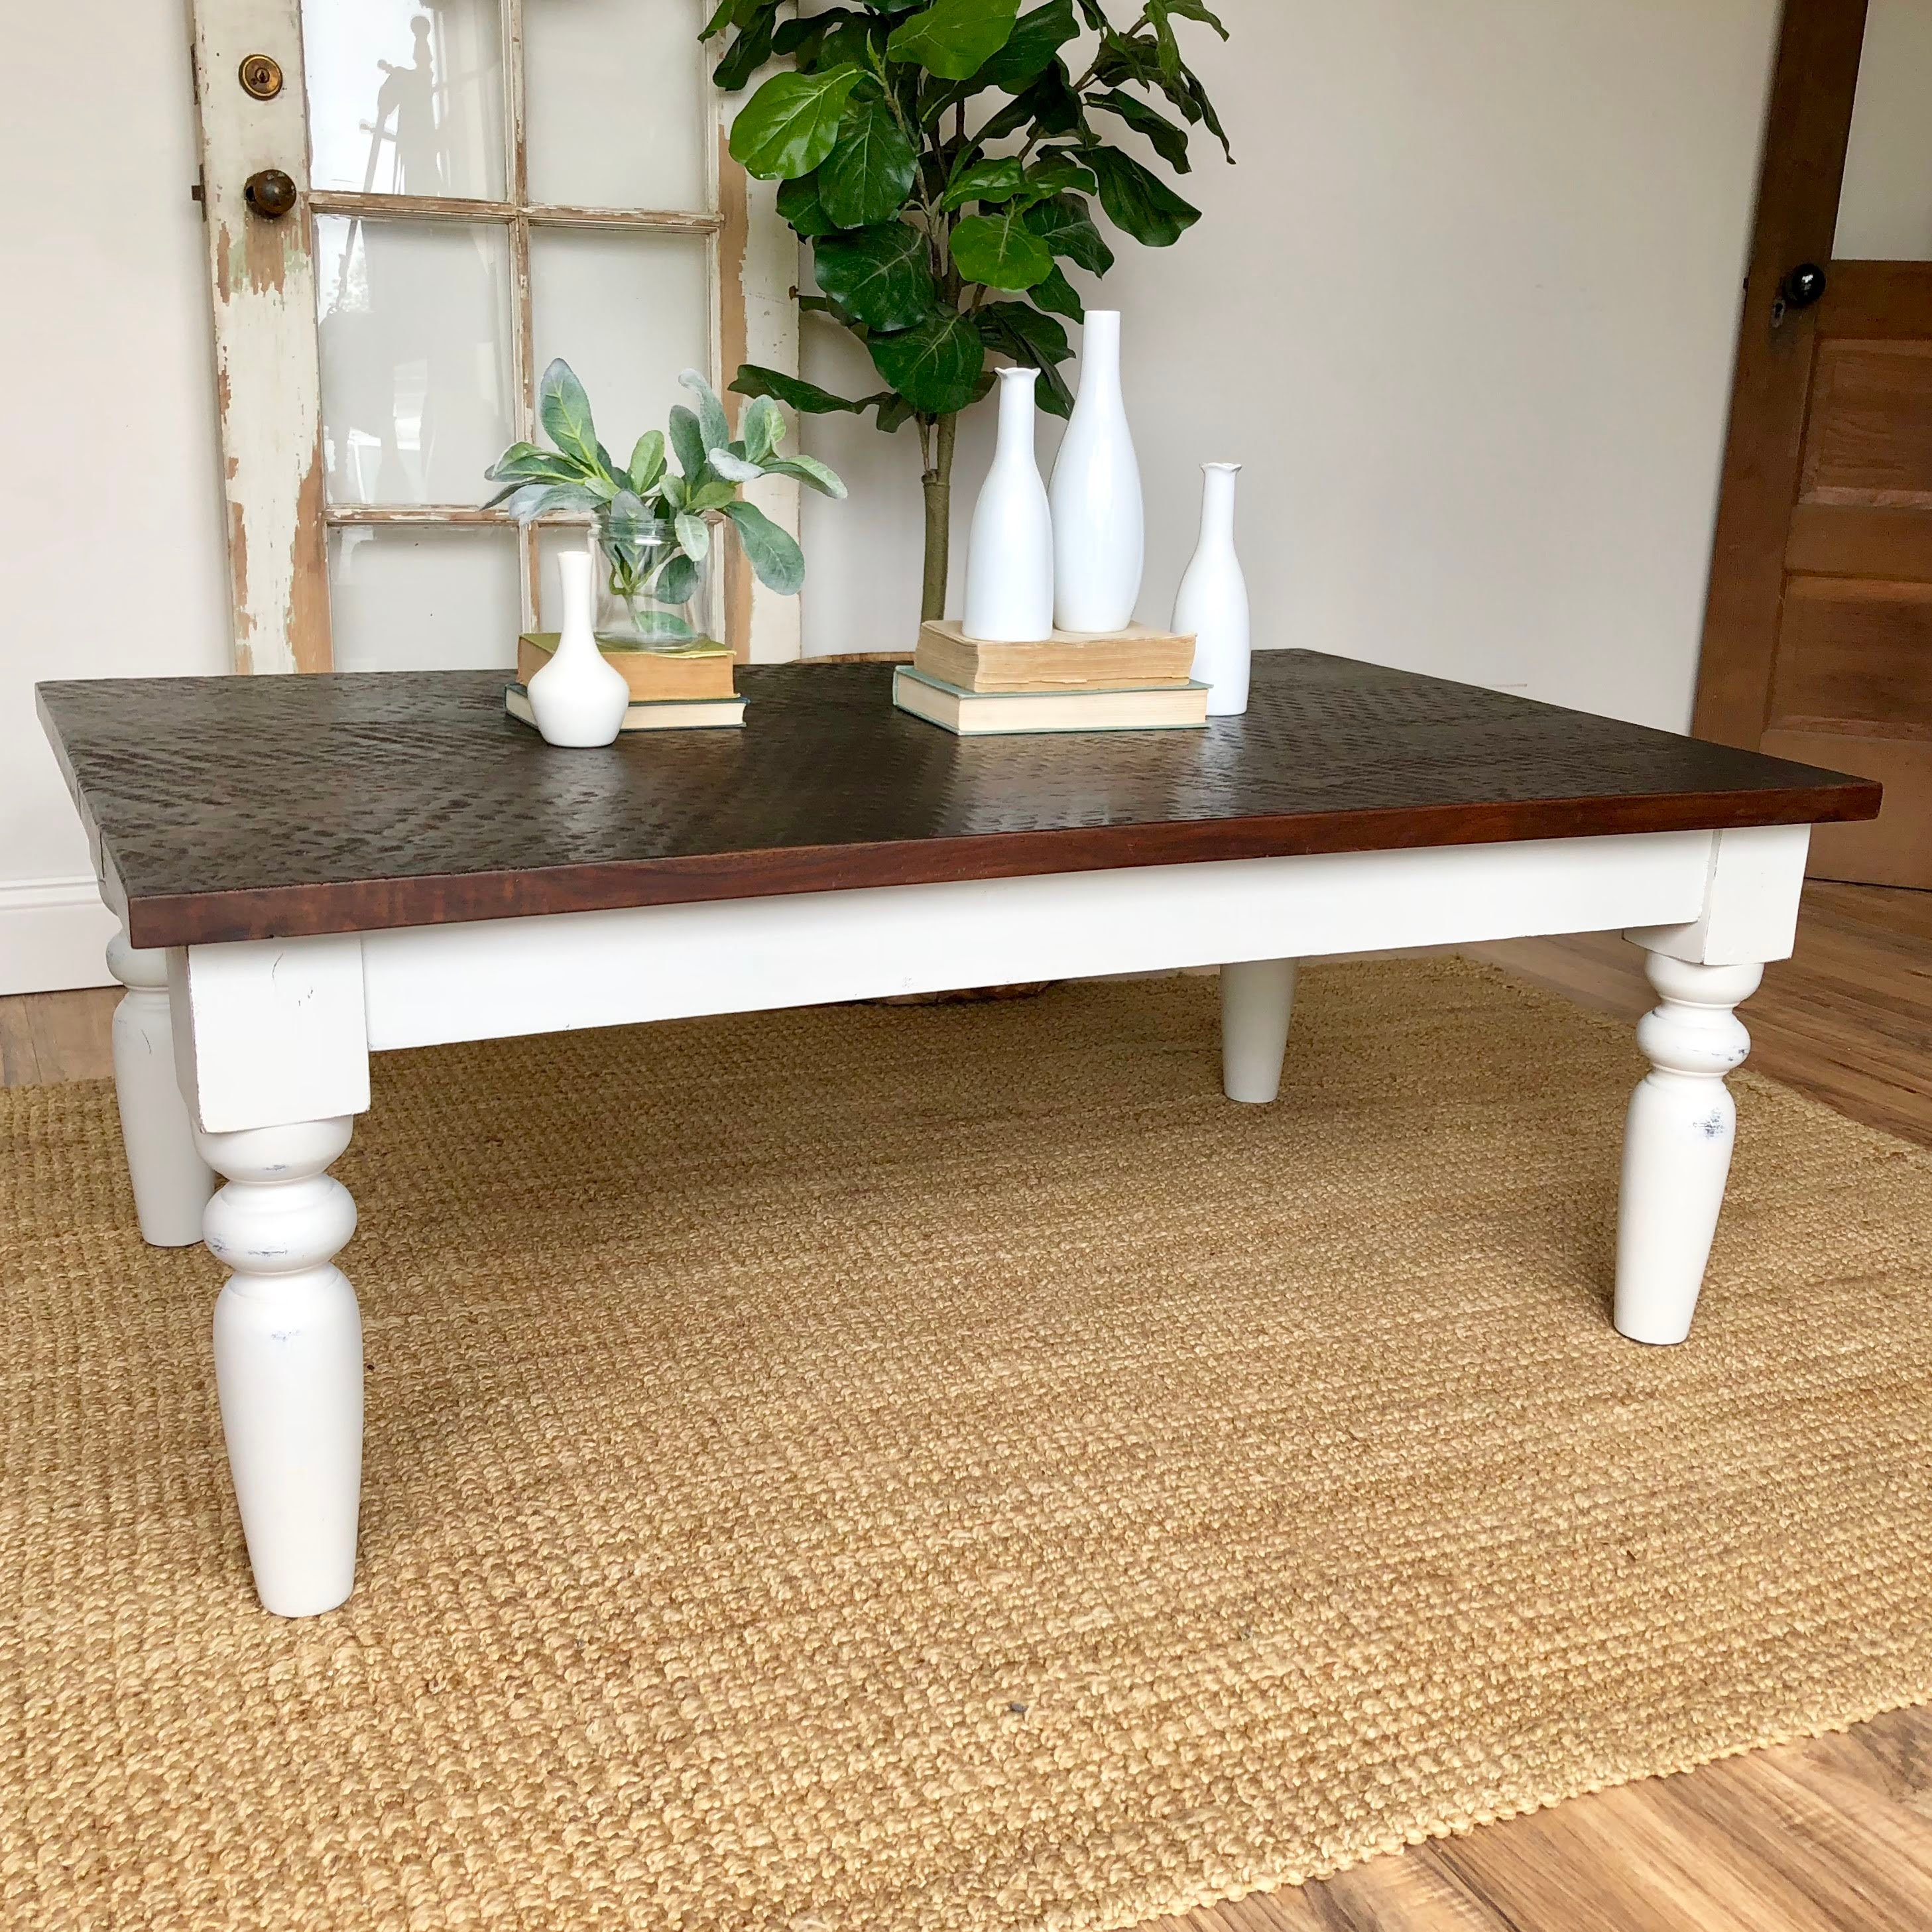 Vintage Wood Coffee Table Nage Designs: White Farmhouse Coffee Table